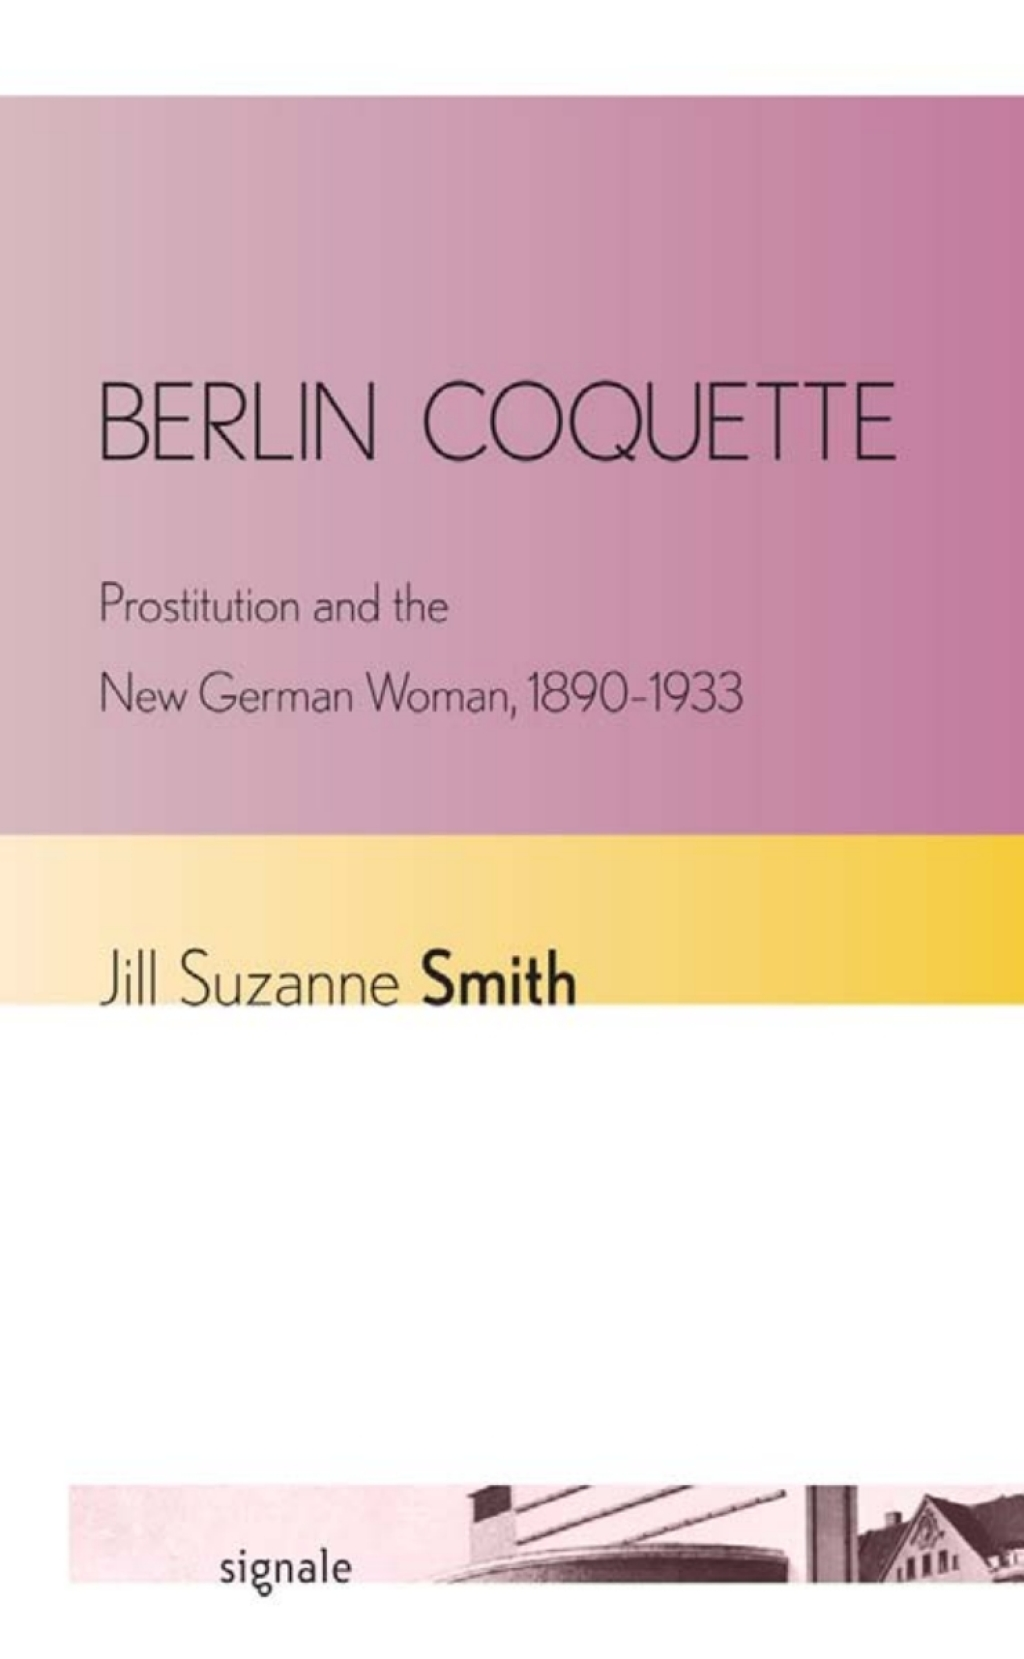 Berlin Coquette (eBook) - Jill Suzanne Smith